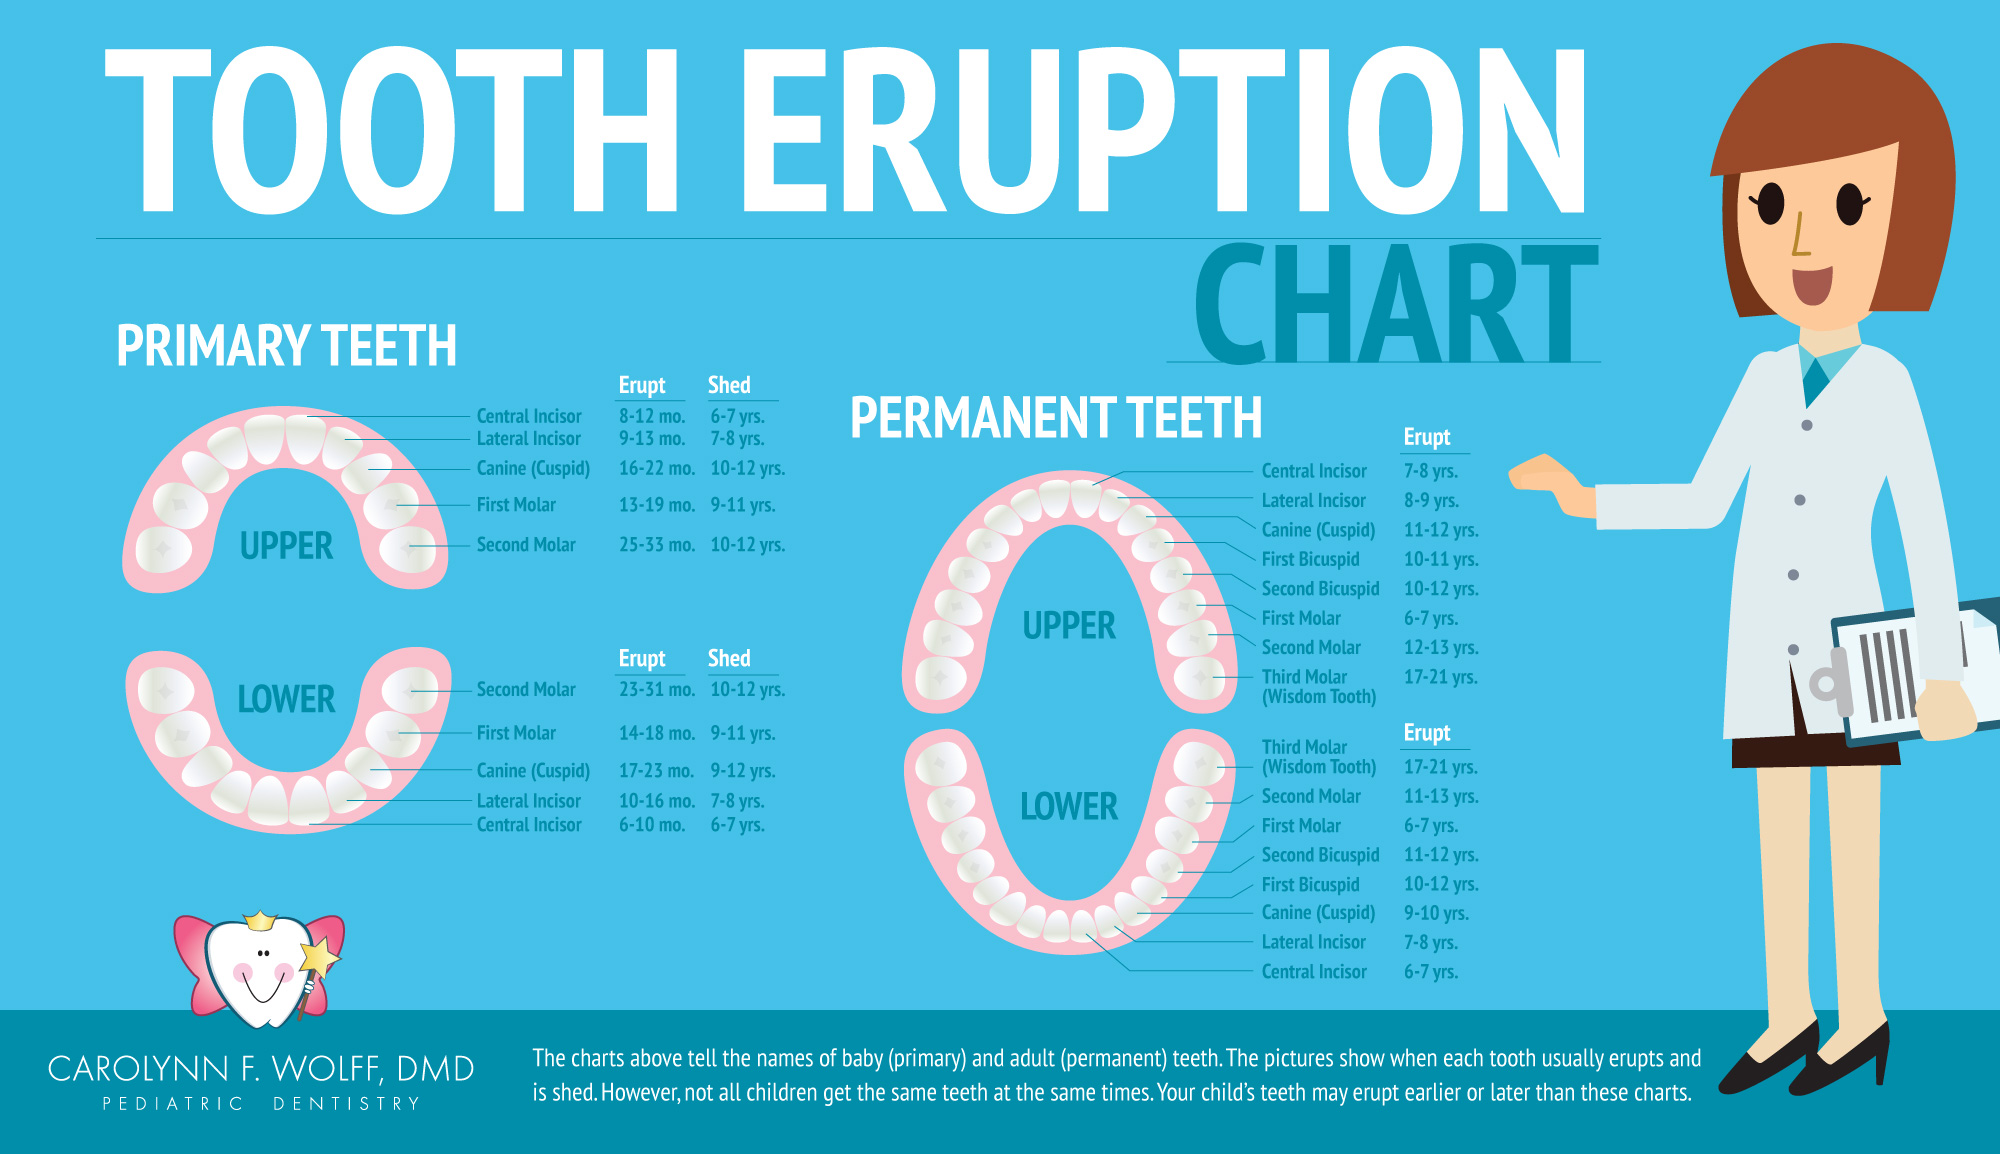 Permanent teeth chart timiznceptzmusic permanent teeth chart ccuart Images